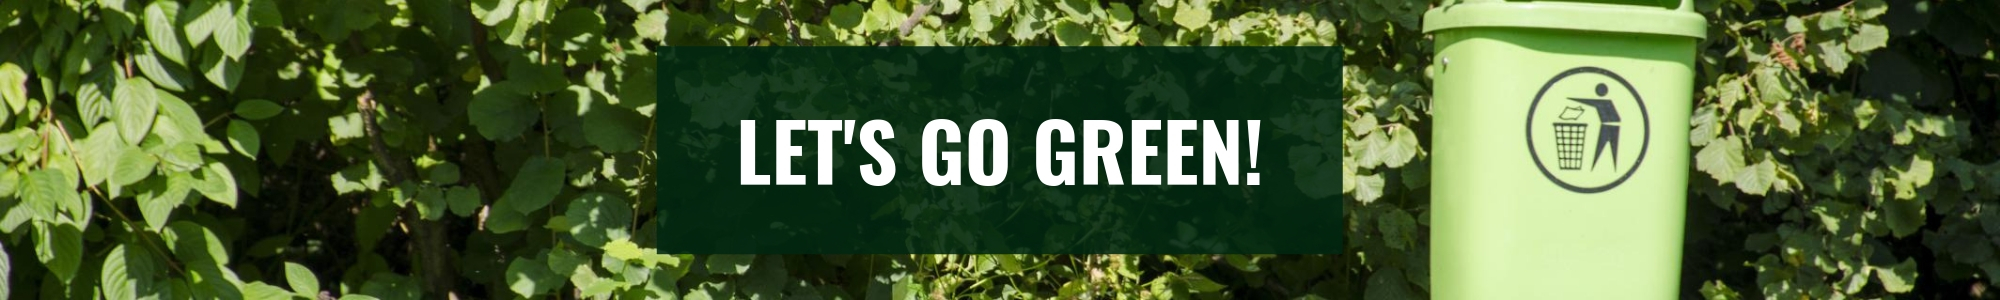 Let's Go Green!